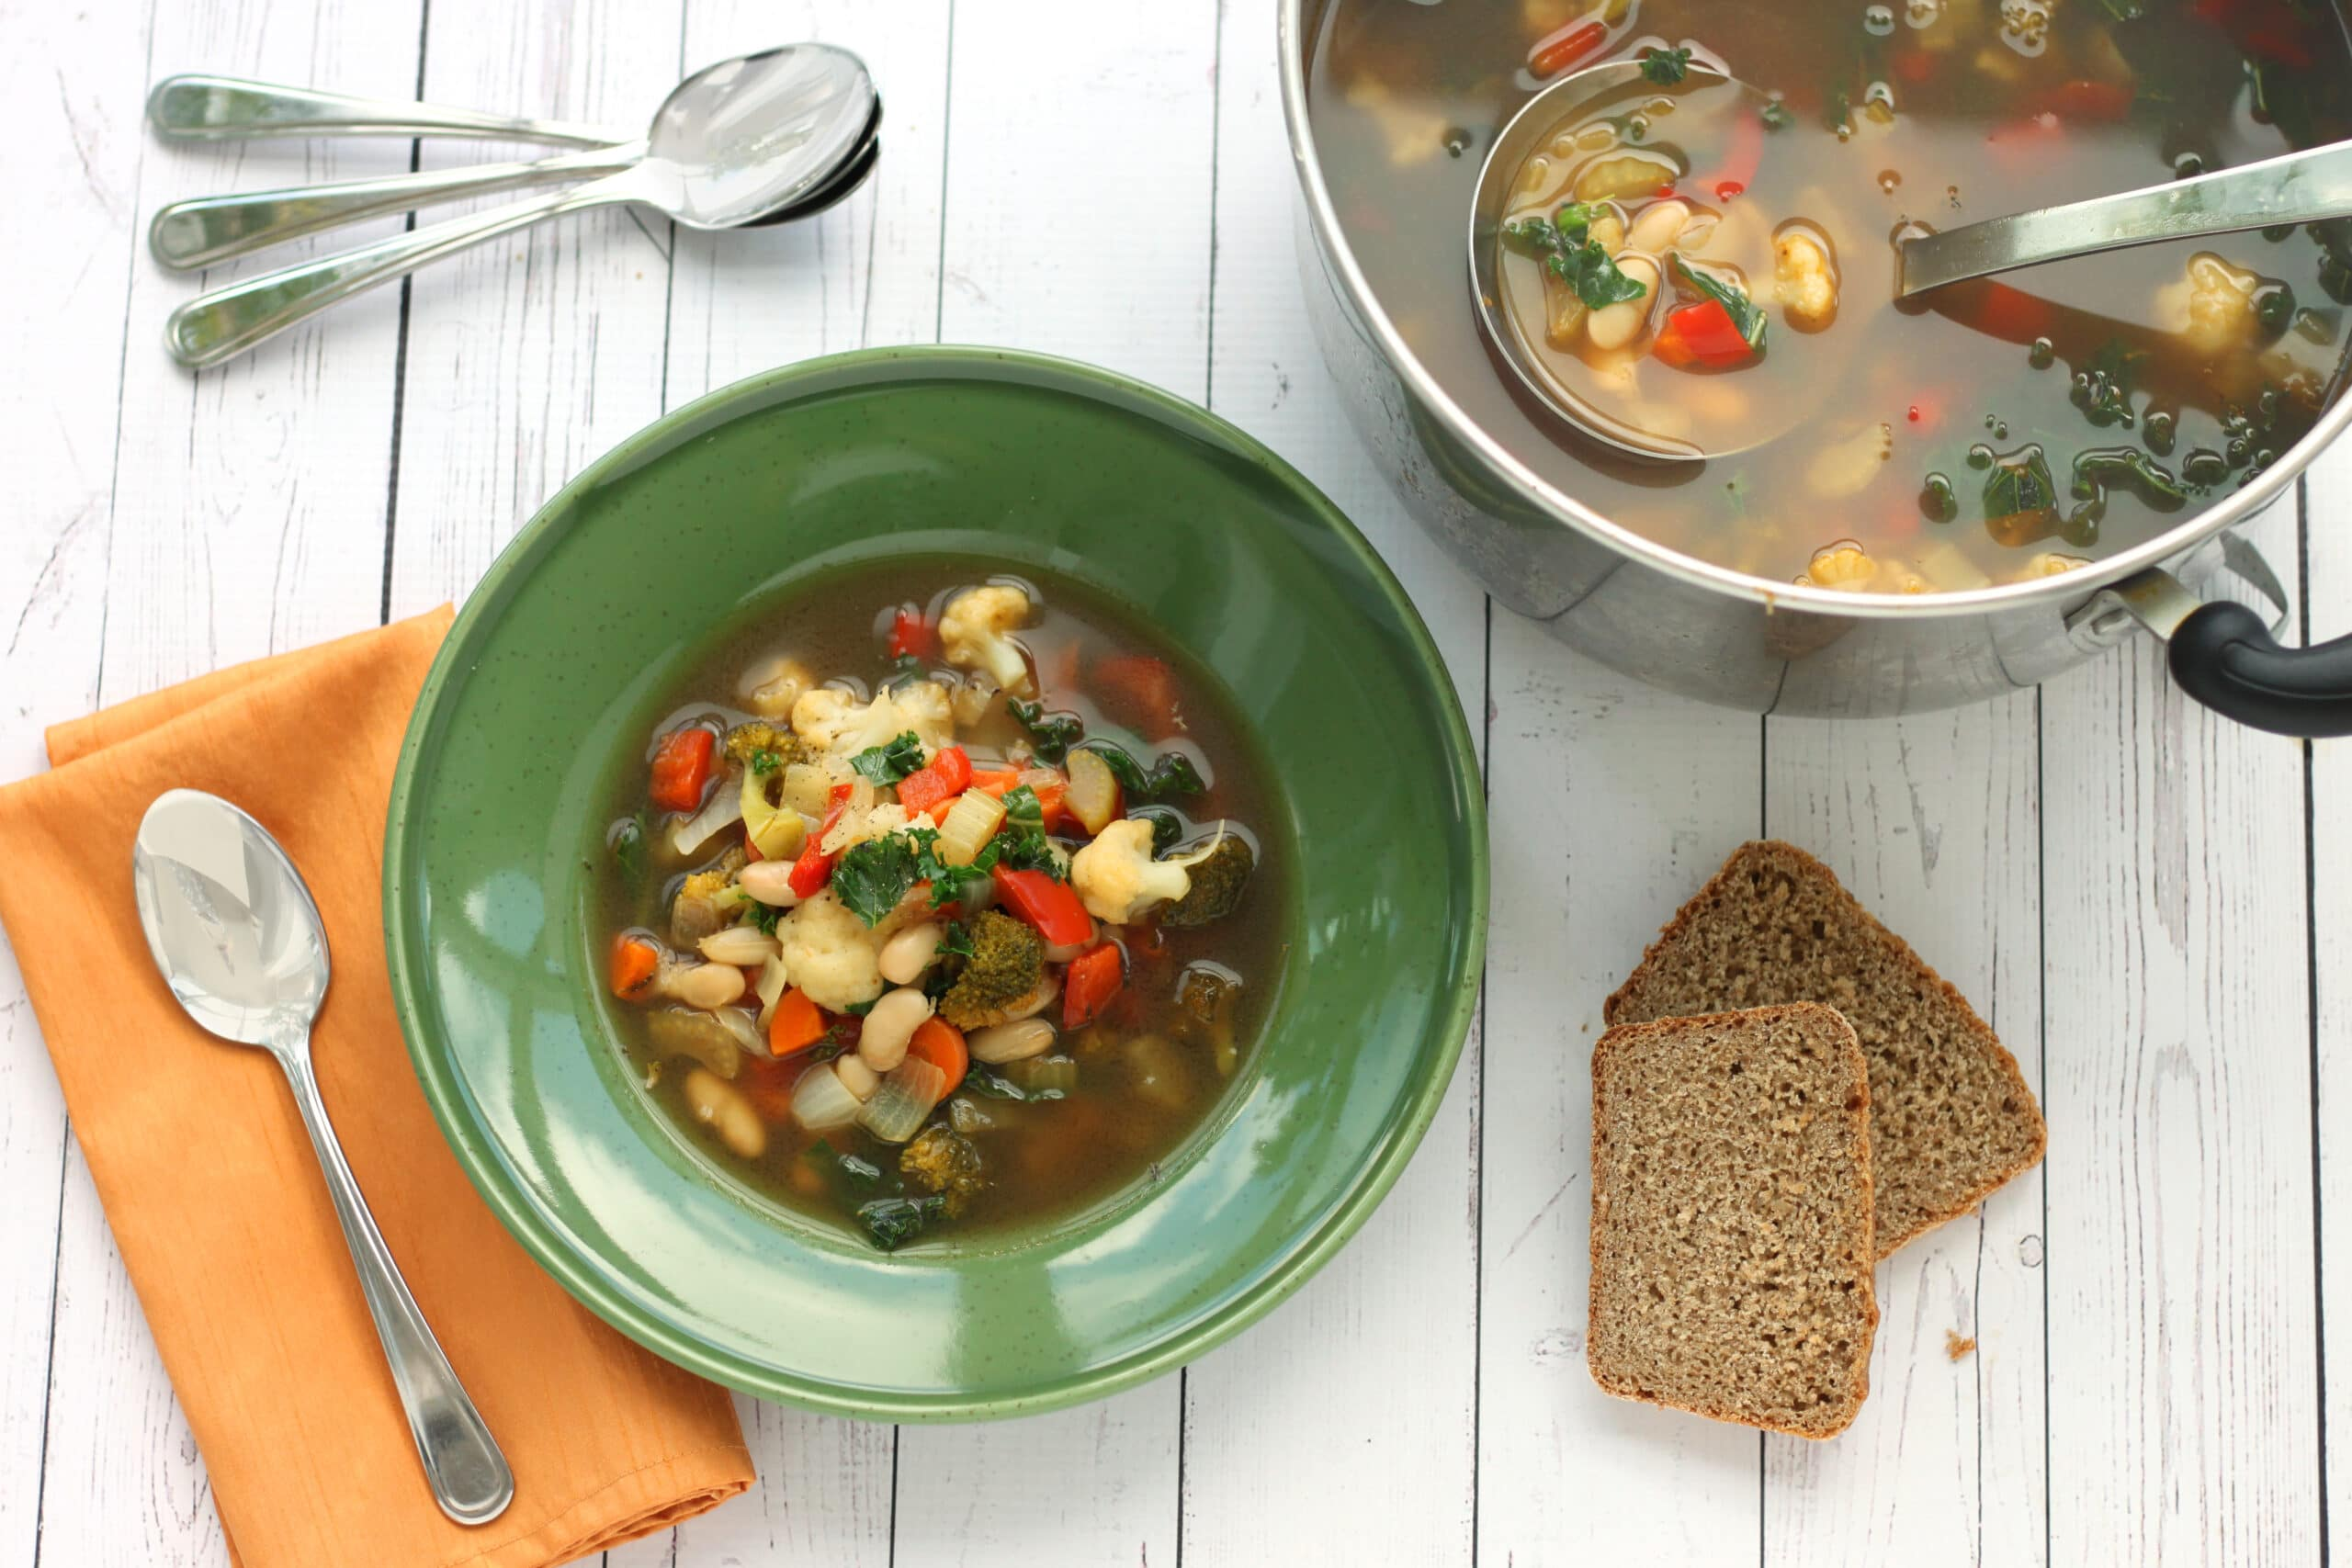 Healthy Homemade Soups & Sandwiches Minestrone Soup by @jesselwellness